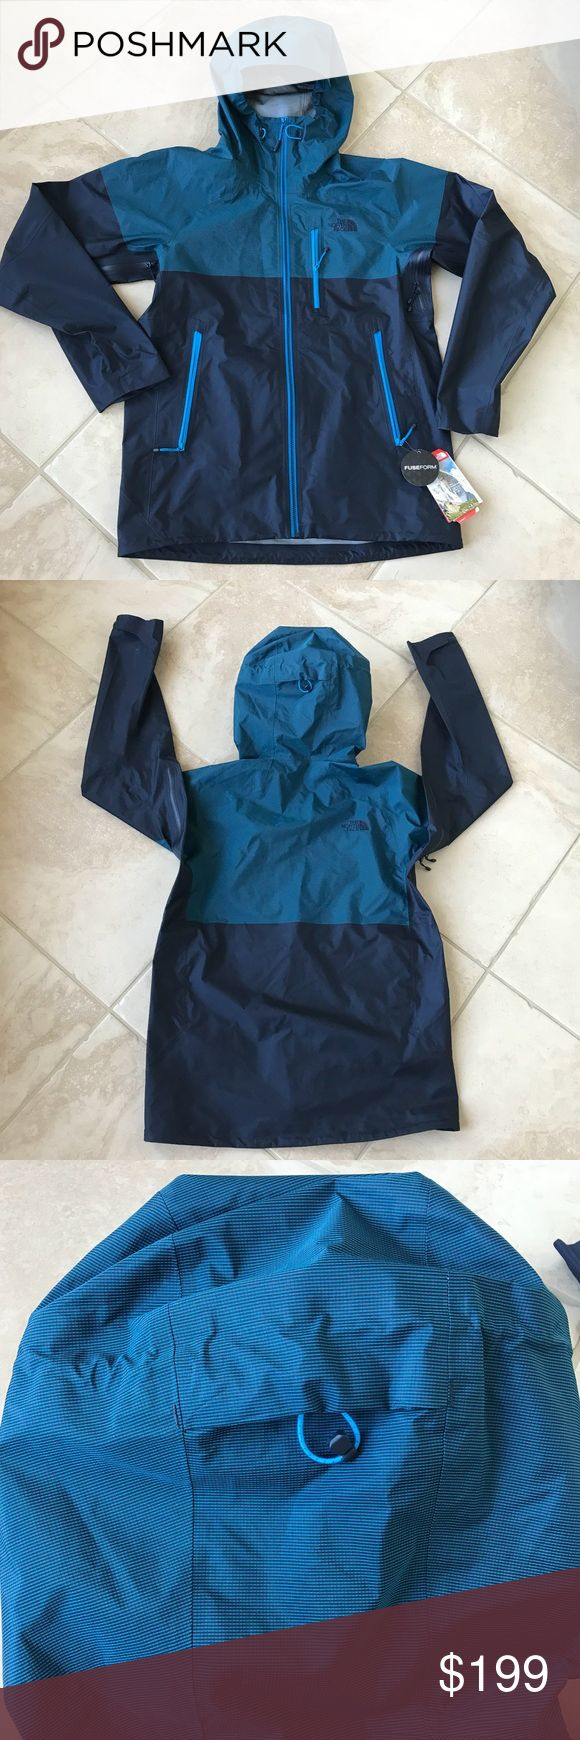 The North Face Fuseform Matrix Rain Jacket $449 NWT The North Face Men's fuceform Rain Jacket The North Face Jackets & Coats